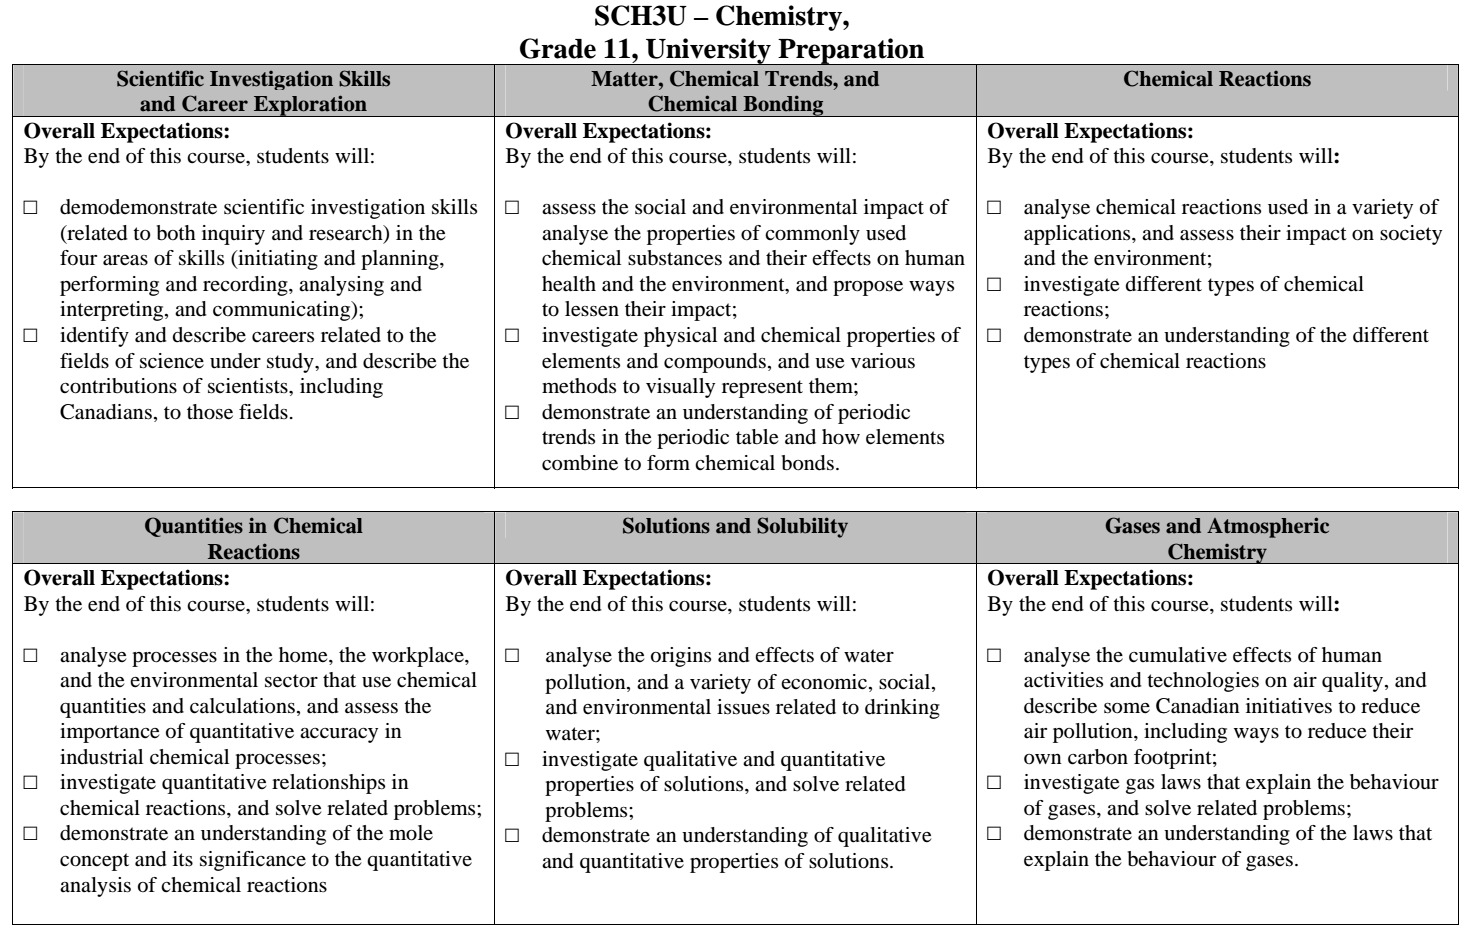 differences between inquiry and investigation essay Research papers and essays are similar in that they both are often required assignments in secondary and post-secondary schools typically, both follow a similar organizational structure, however, research papers focus on answering a research question, while essays often defend a thesis statement.